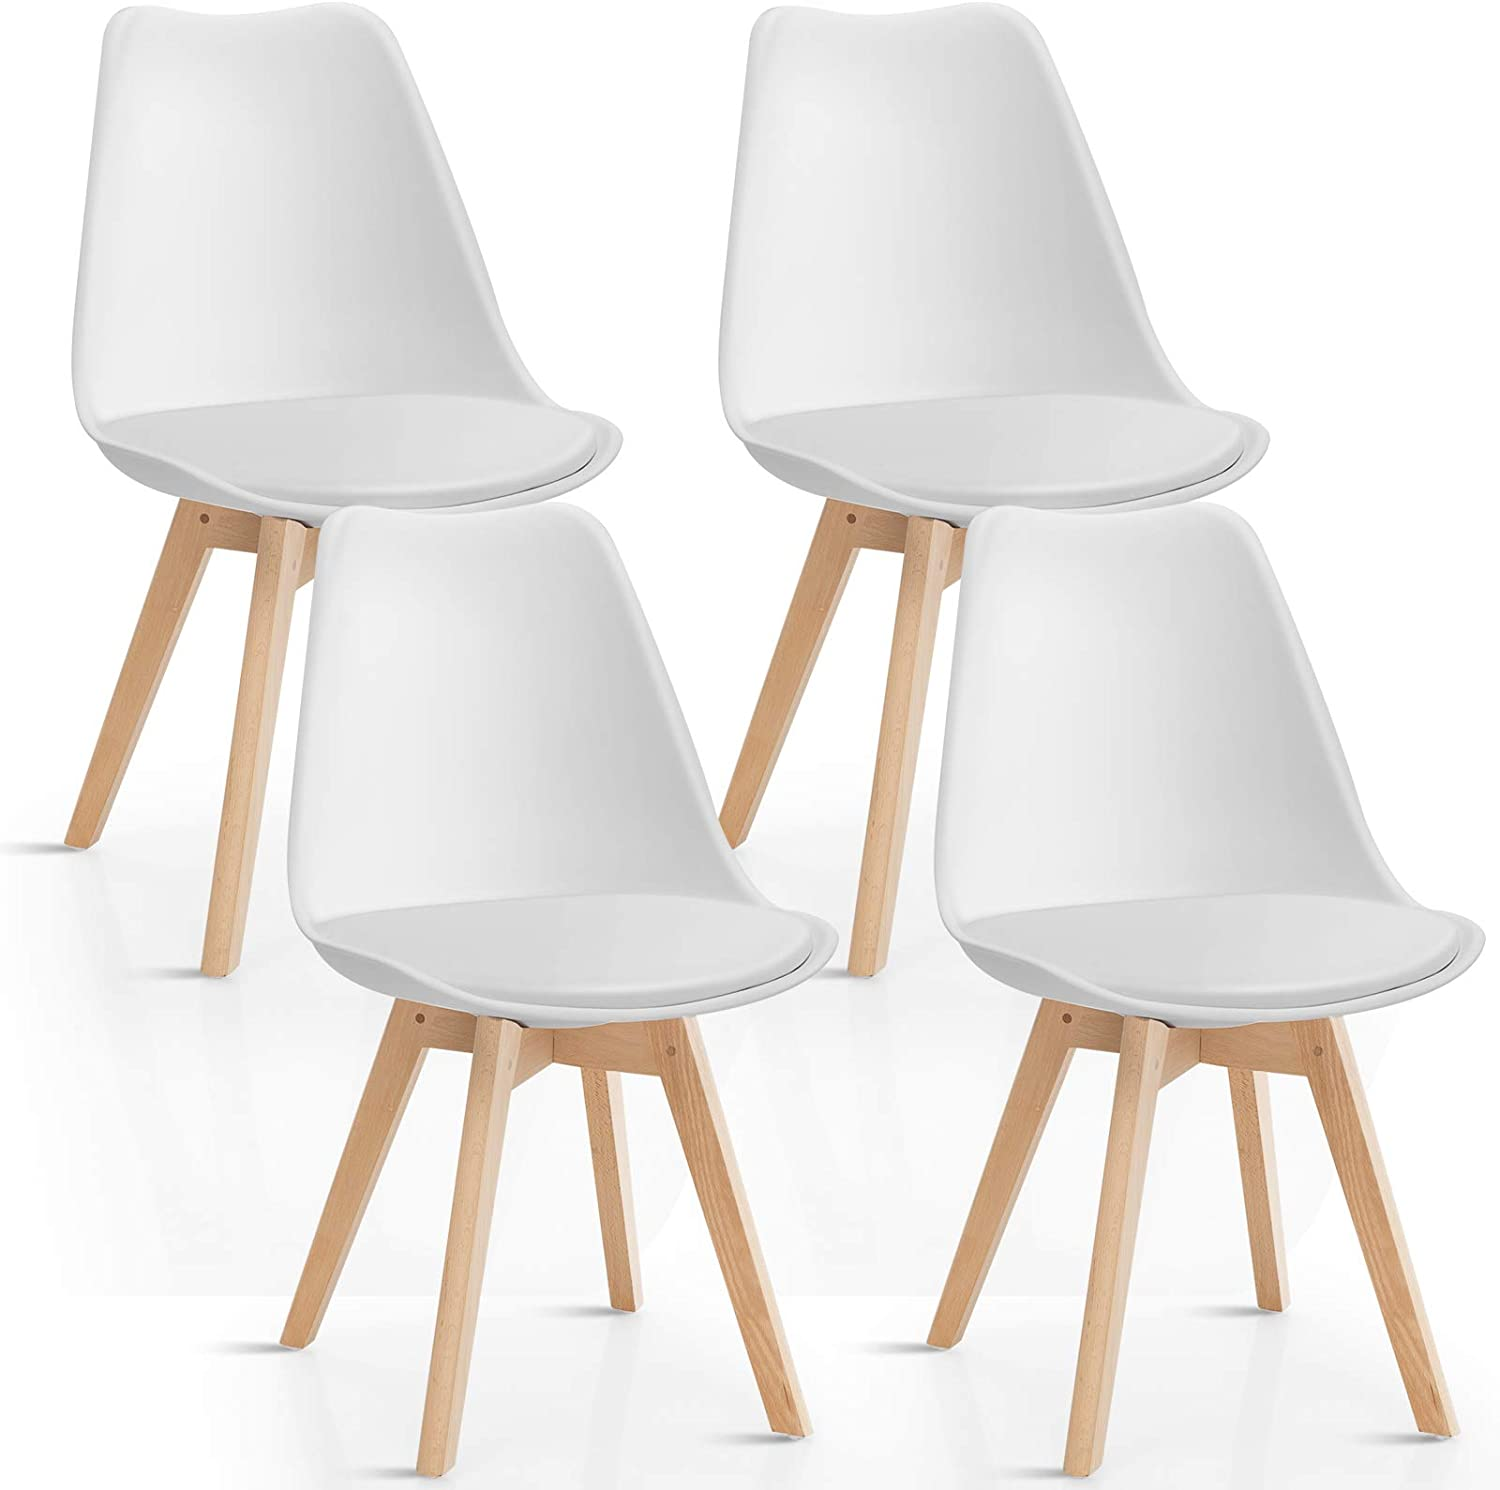 Amazon Com Giantex Set Of 4 Modern Dining Chairs High Backrest Kitchen Chairs Elegant Mid Century Side Chairs W Padded Seat Solid Wood Legs Upholstered Tulip Chair For Dining Room Living Room White